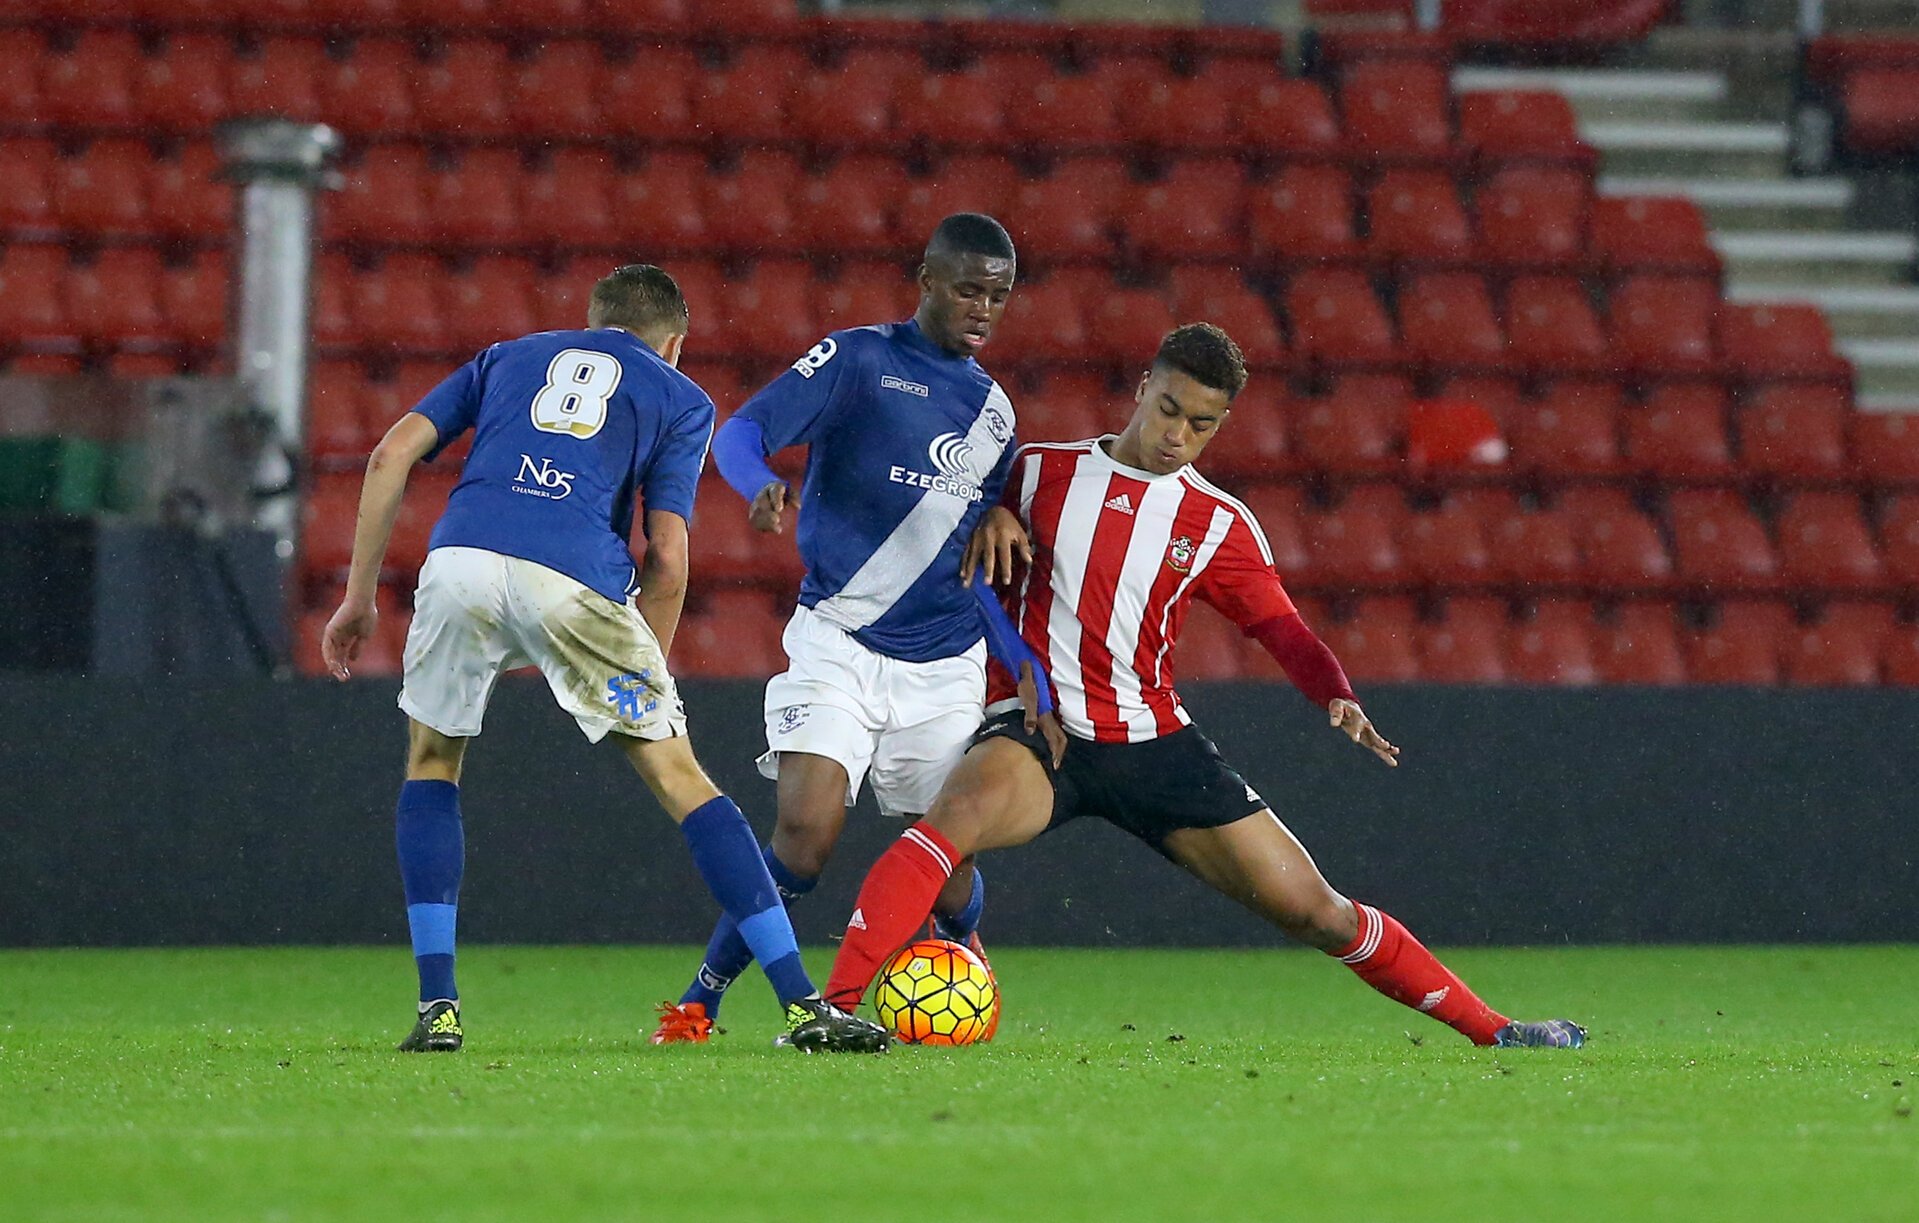 Yan Valery during the FA Youth Cup game between Southampton and Birmingham City, at St Mary's stadium, Southampton, 10th December 2015